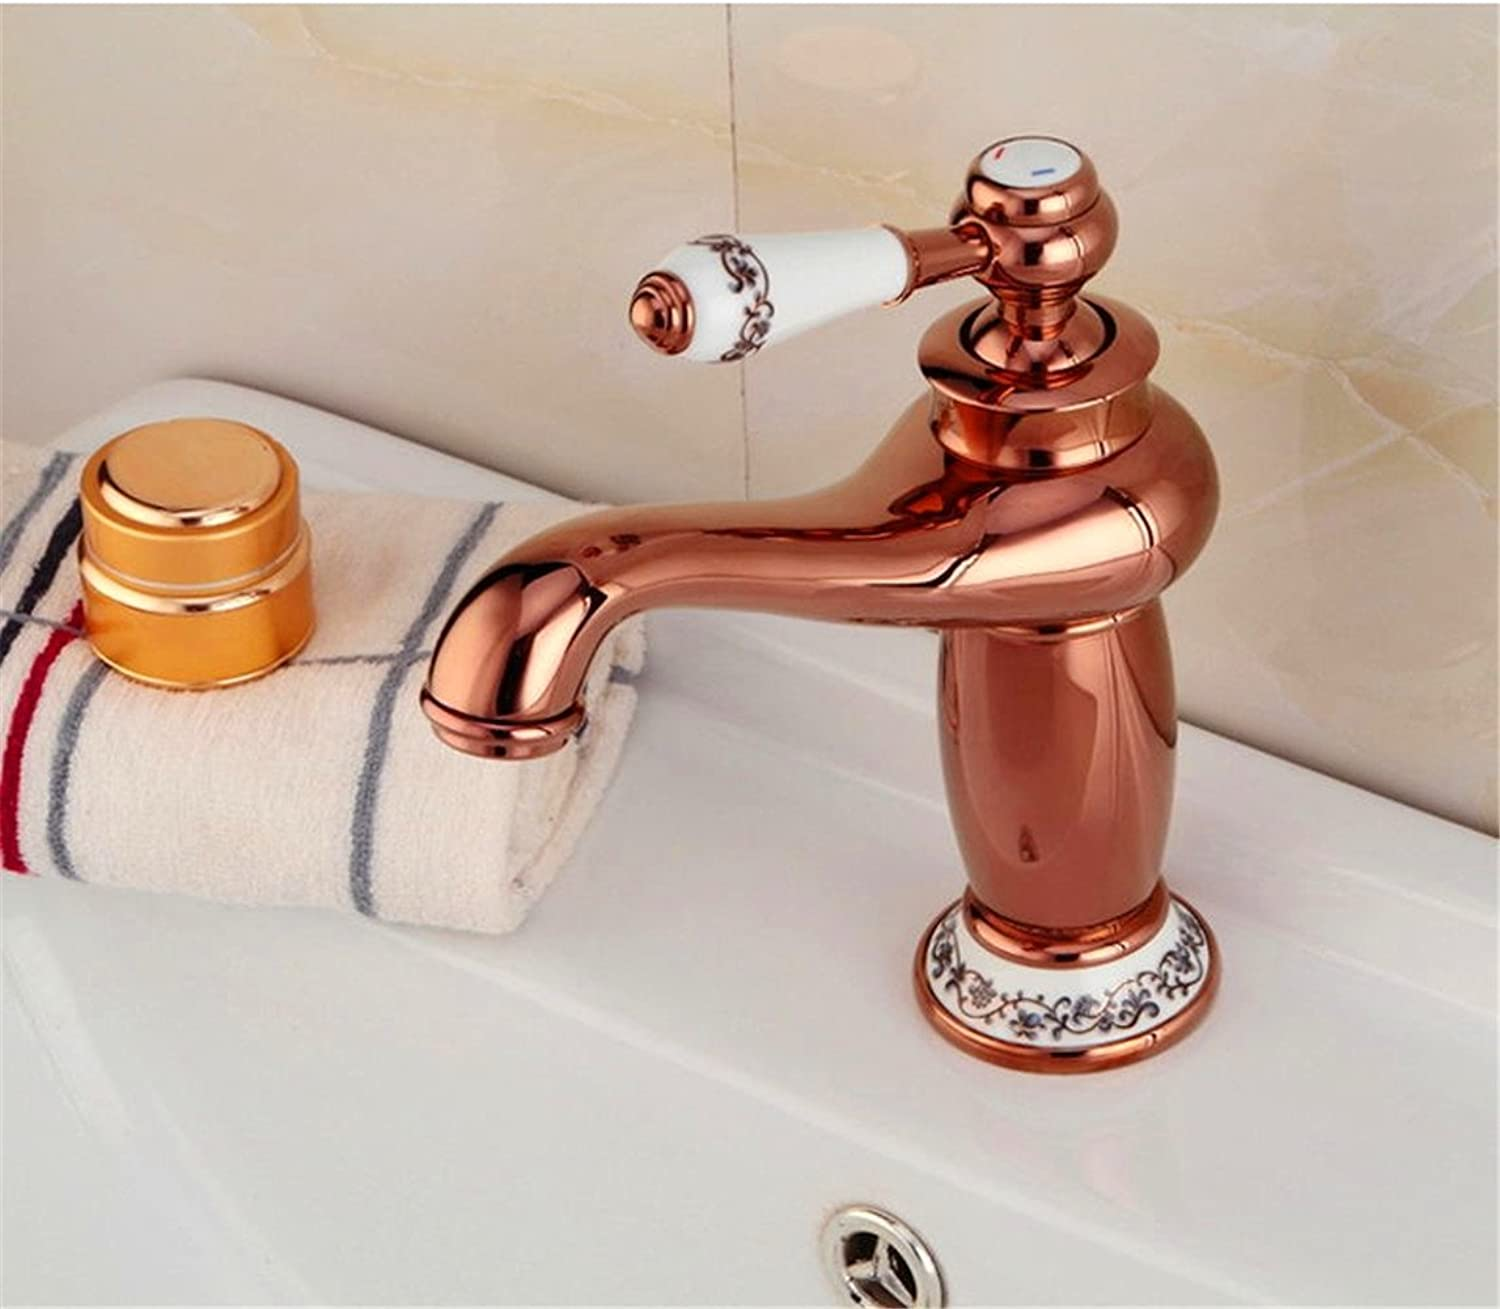 Hlluya Professional Sink Mixer Tap Kitchen Faucet gold-plated faucets full copper bluee-and-gold bathroom faucet porcelain hot and cold basin basin mixer redation 3B